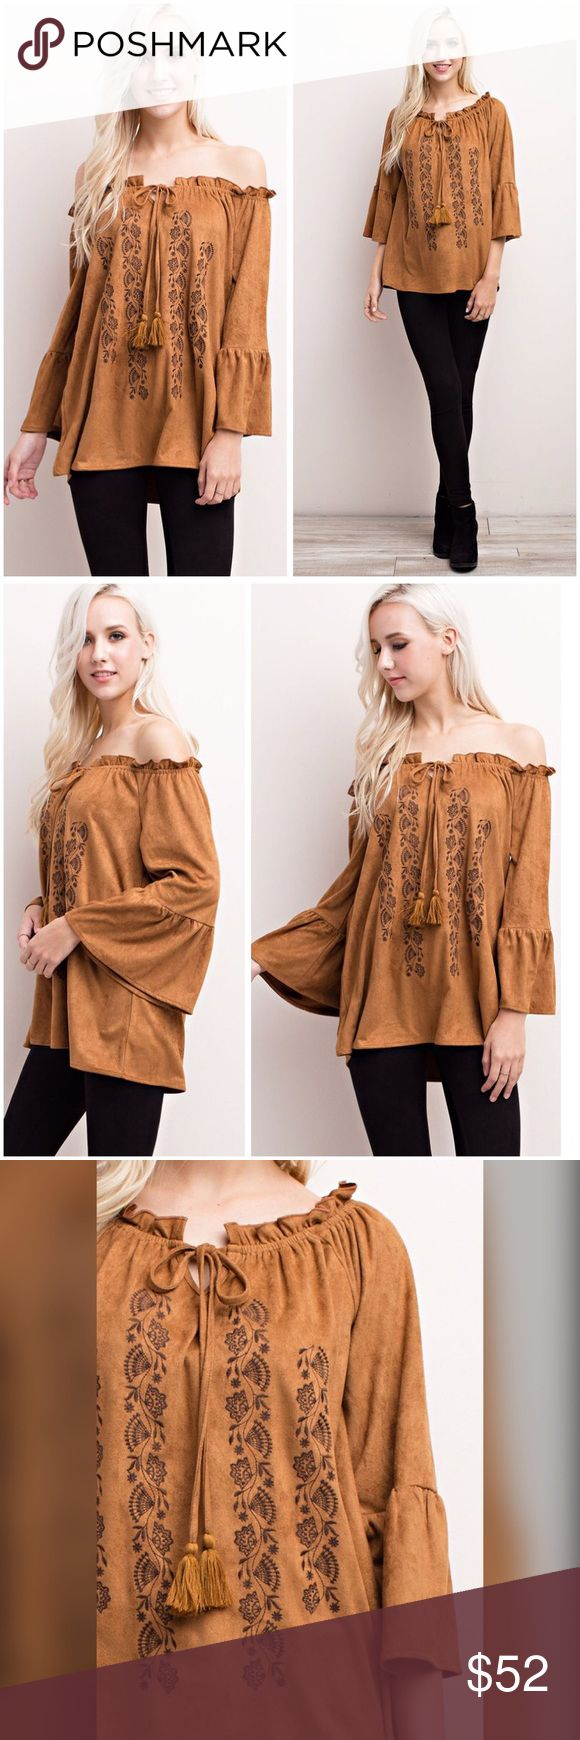 designer ties men edhz  Gorgeous faux suede off or on shoulder top! Beautiful in camel with black  design